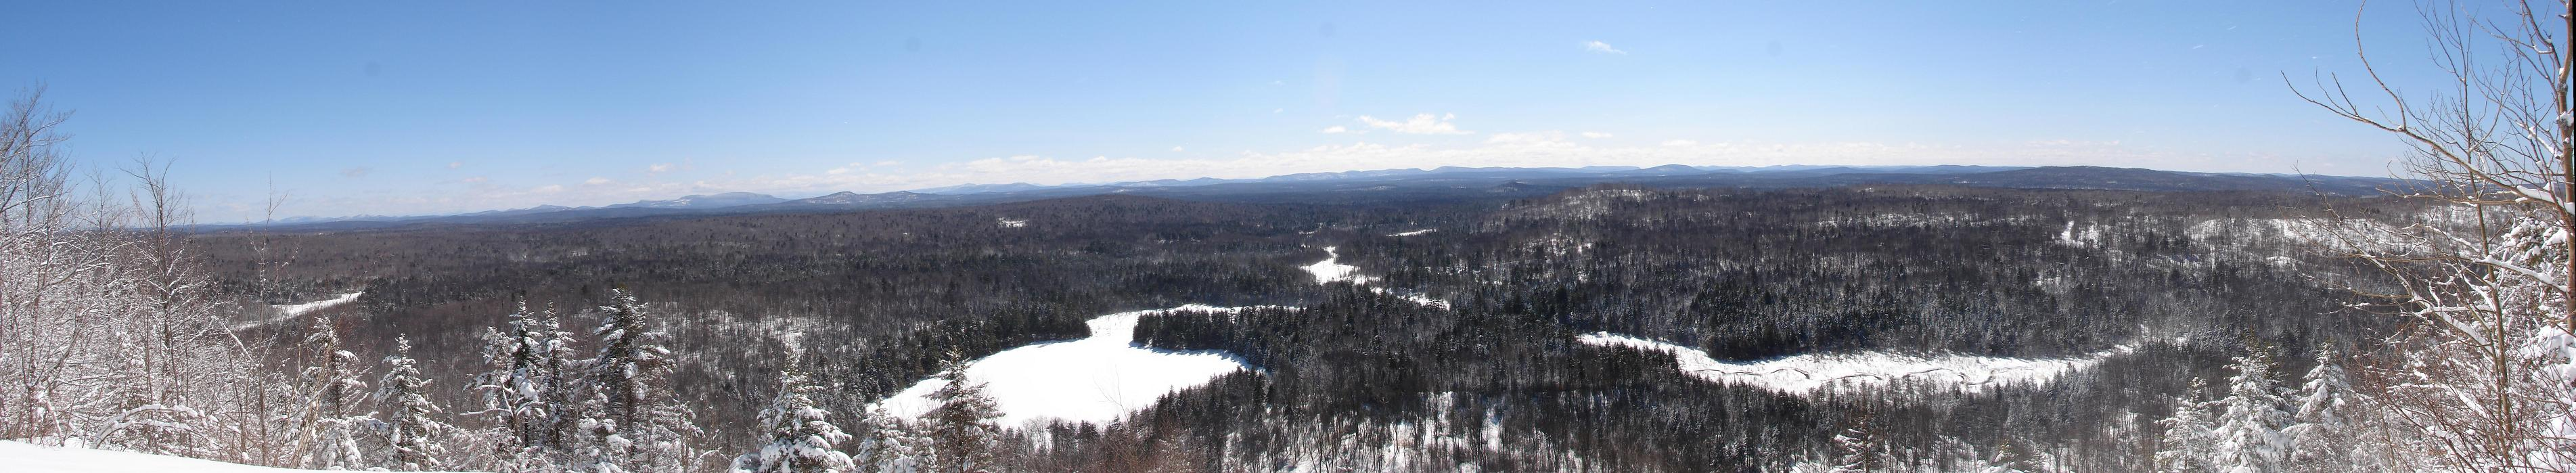 View From Little Blue Mountain - Panorama